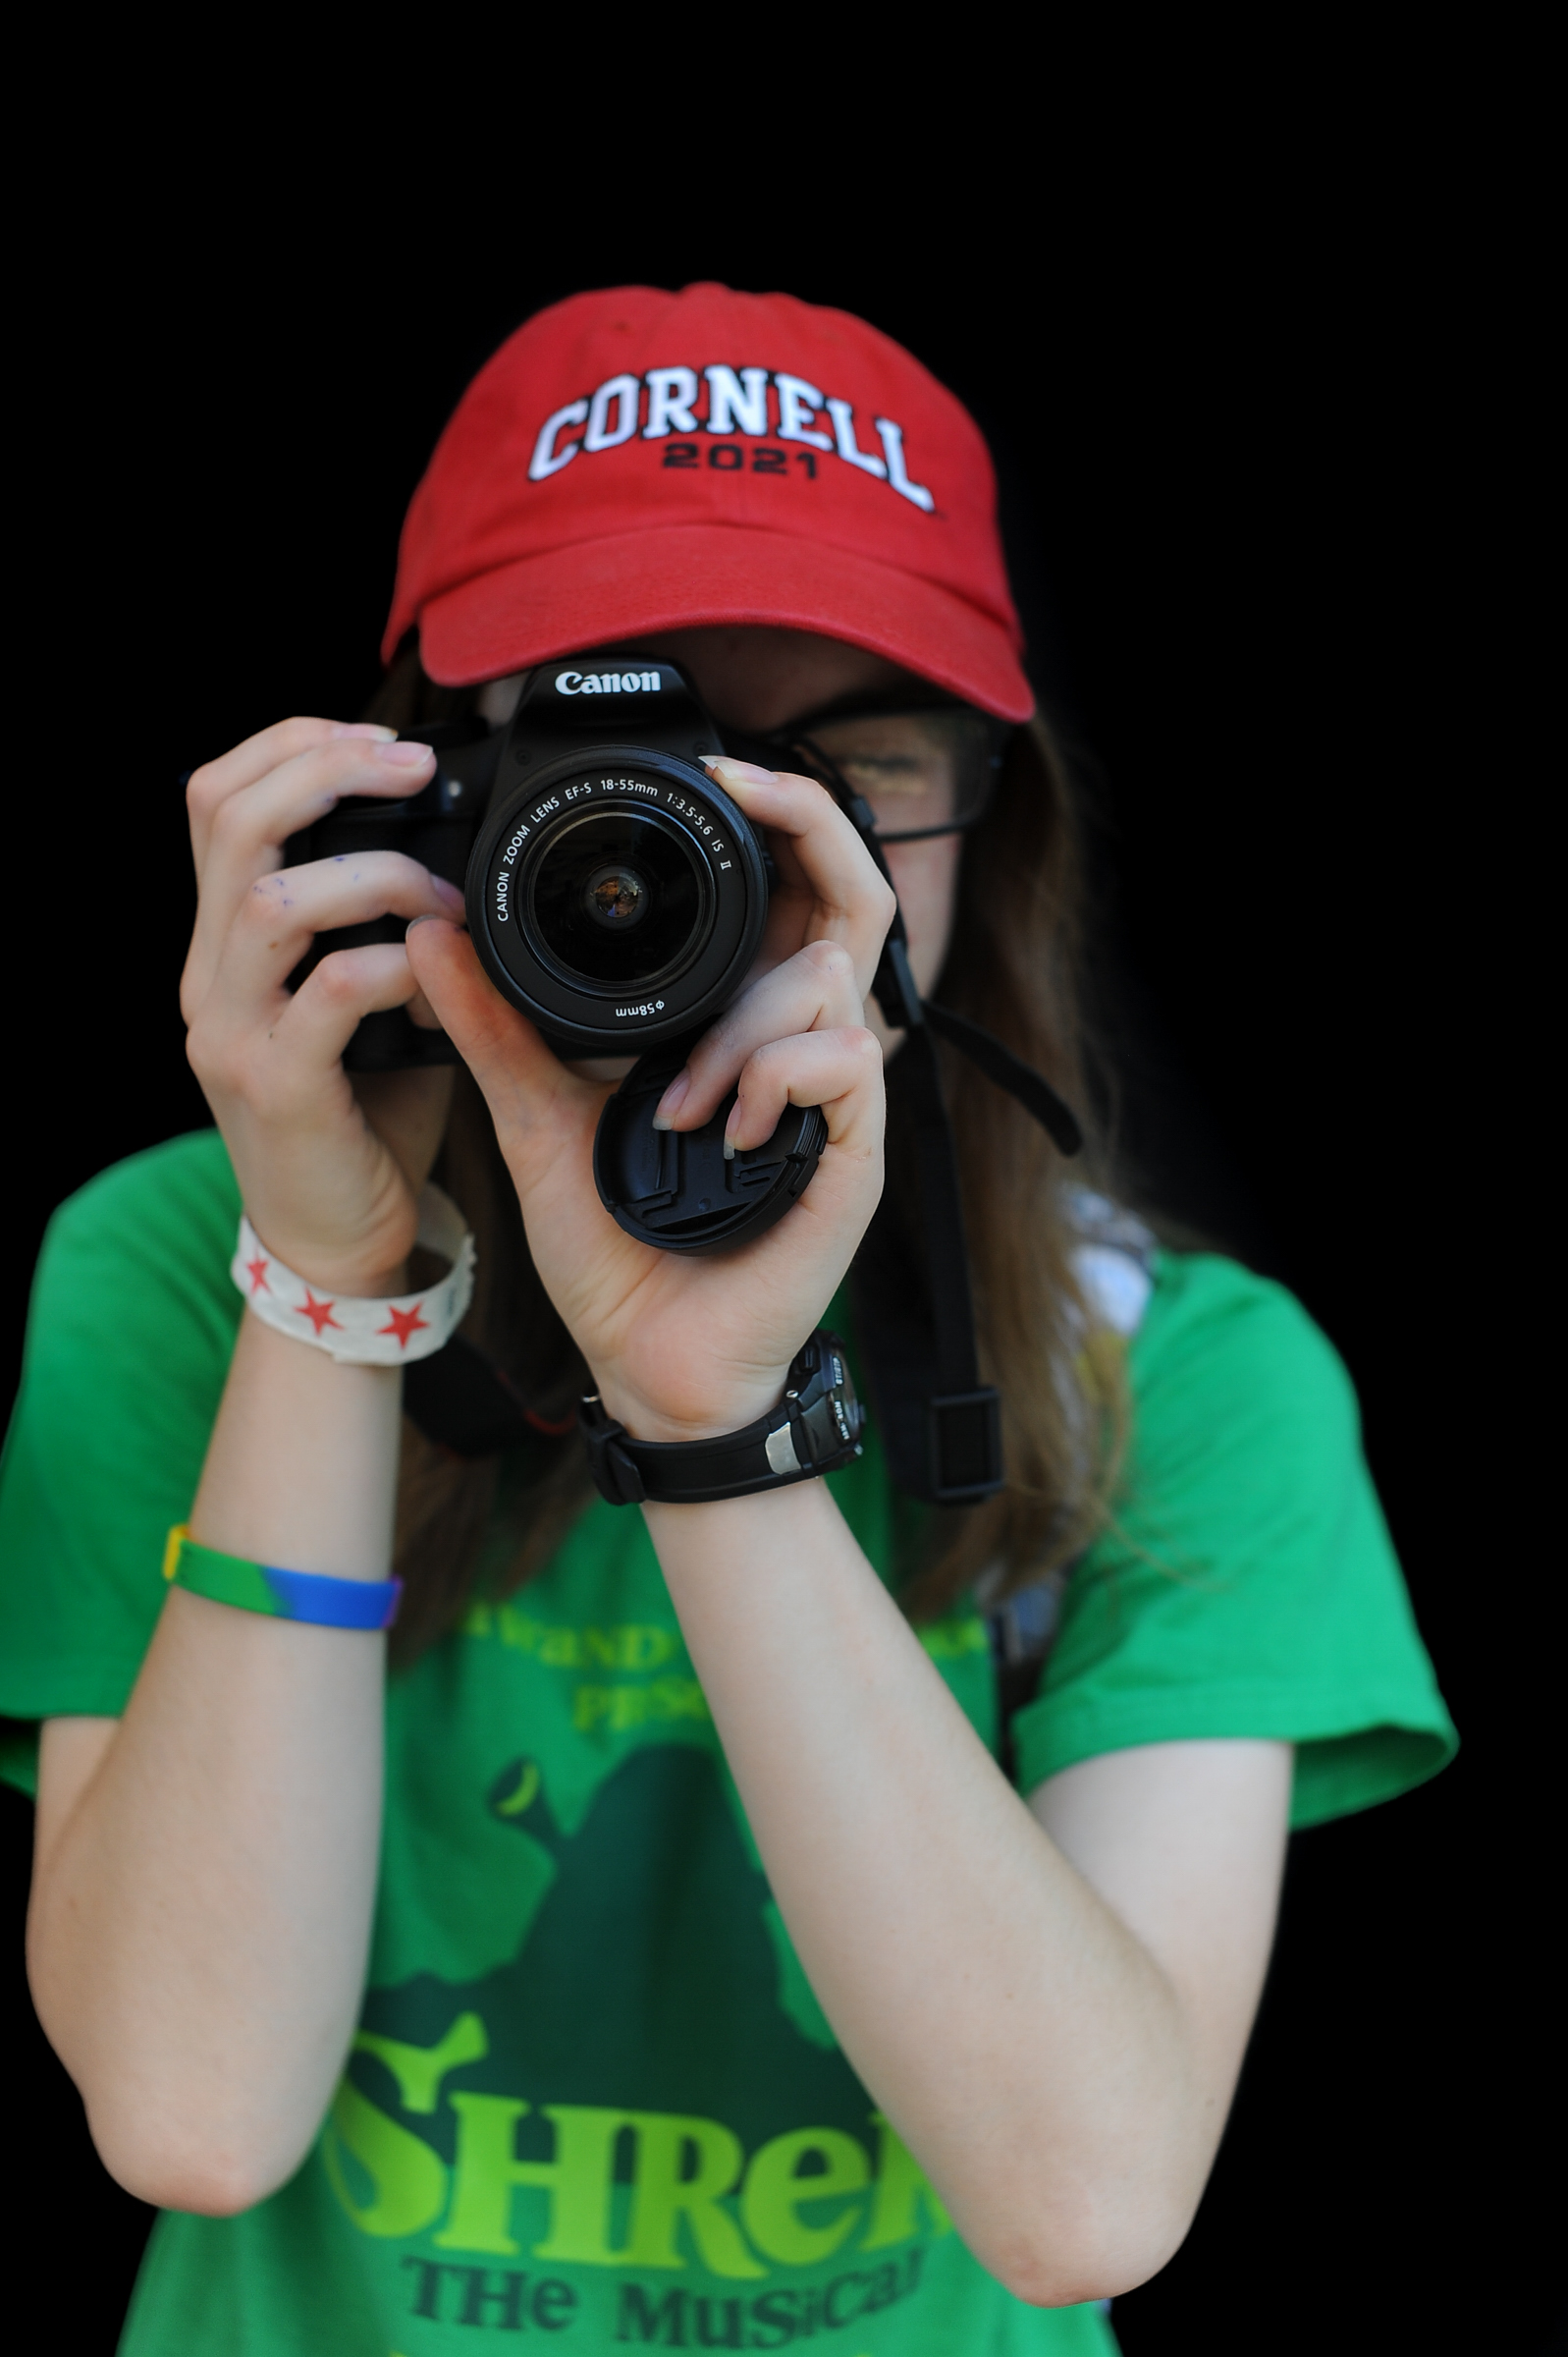 Name: Rachel LaDue